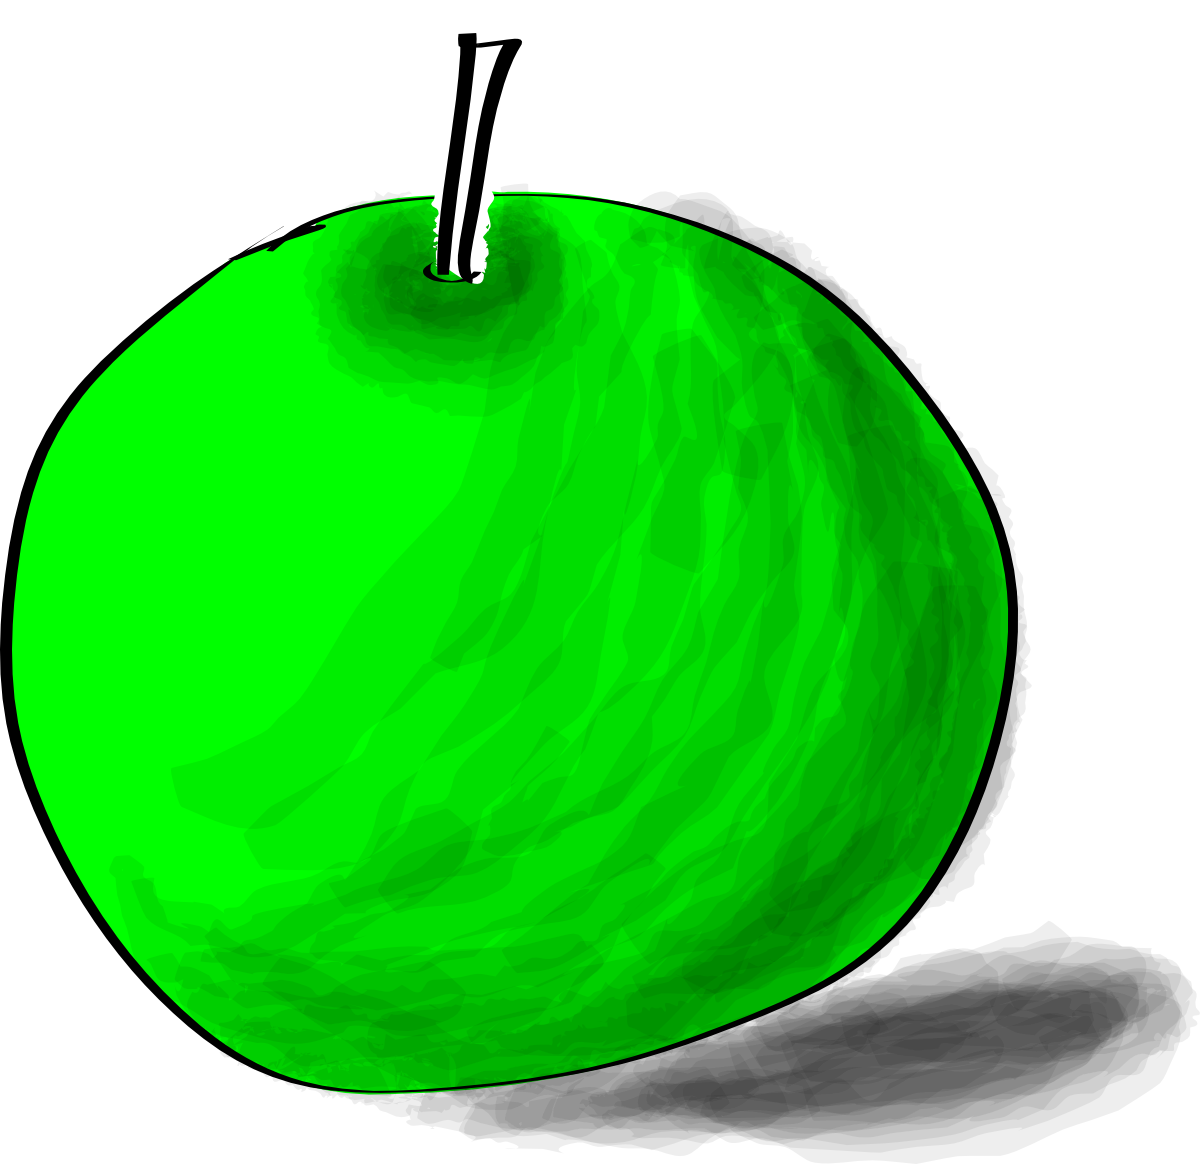 Drawing of a green apple